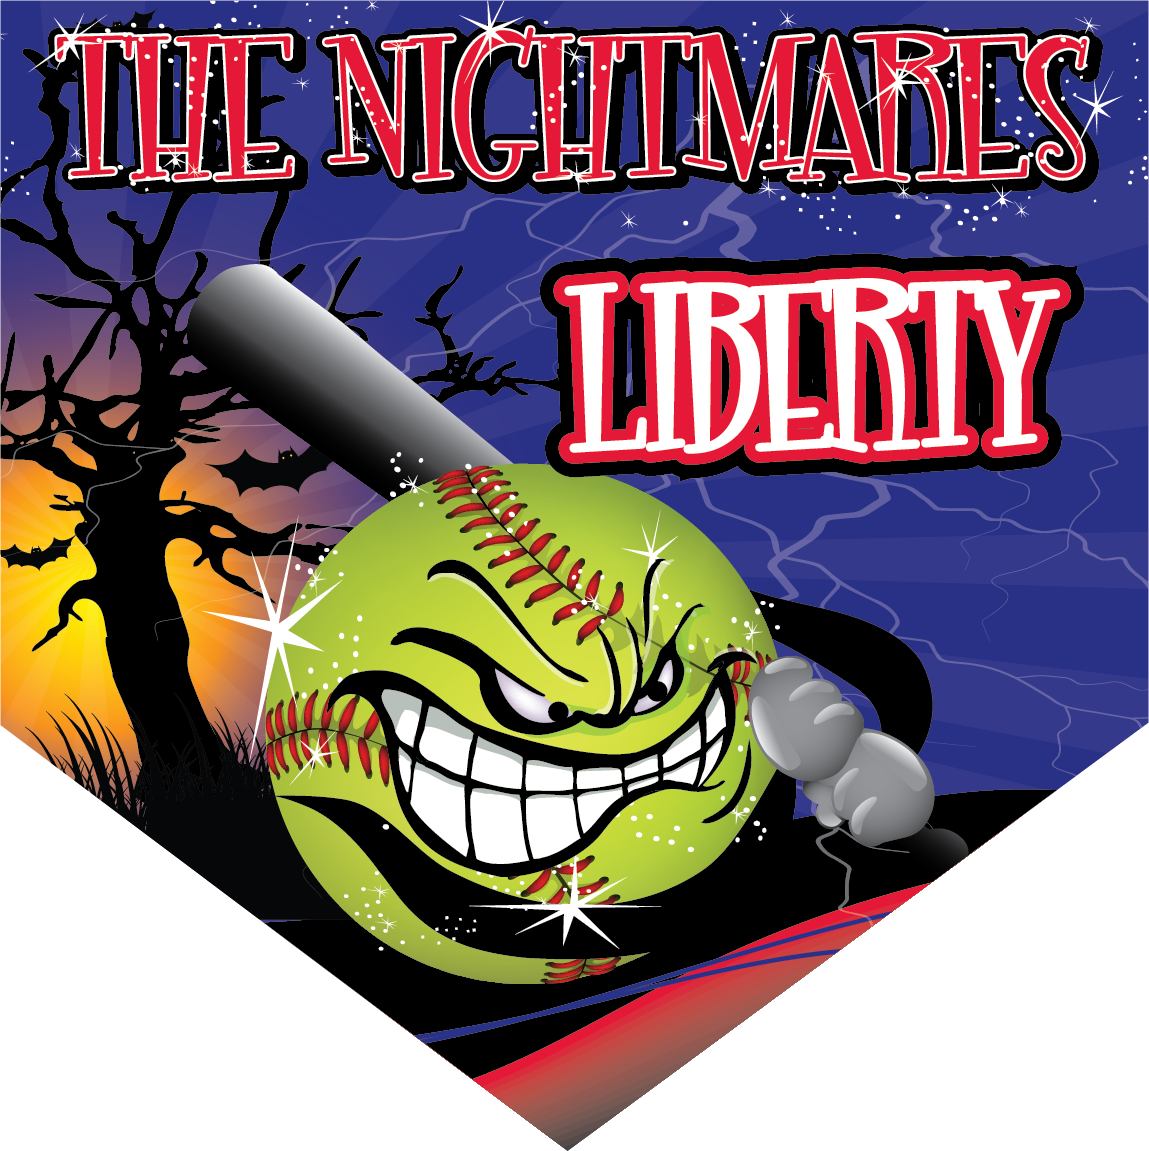 The Nightmares Custom Home Plate Banner